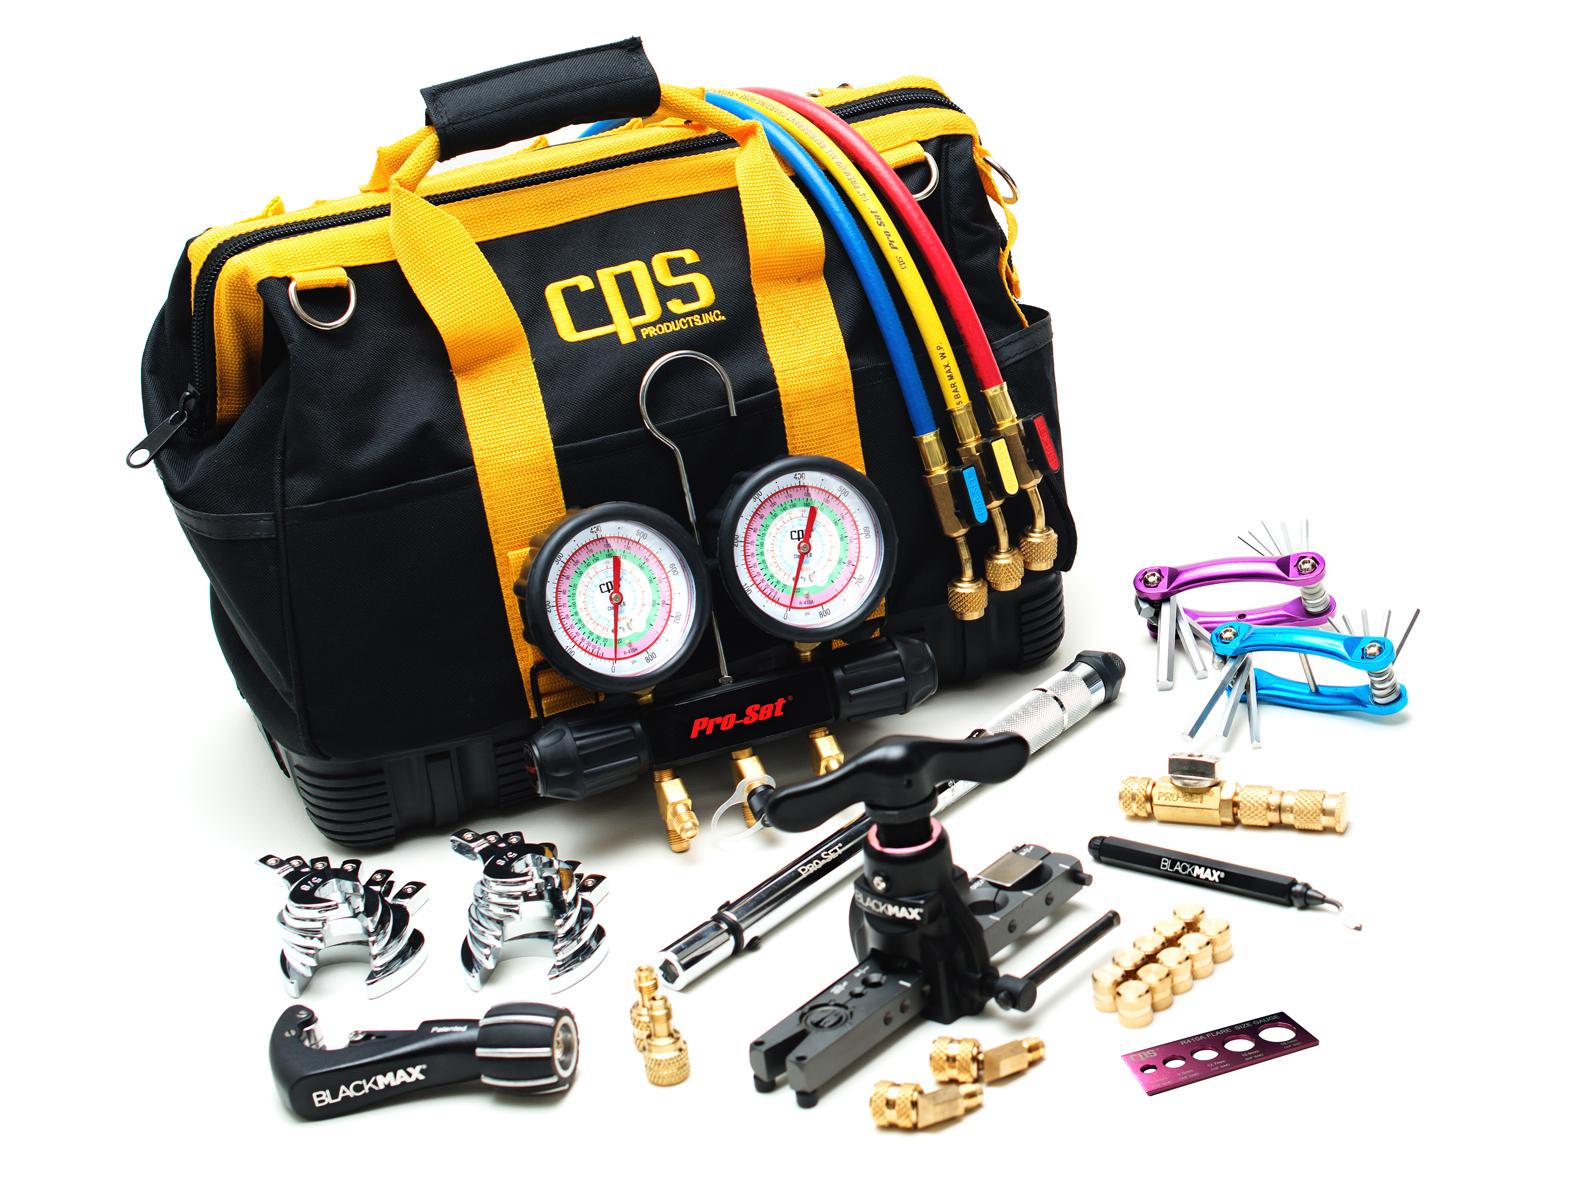 CPS TLB410KIT Mini-Split Tool Kits Deluxe Universal R410a Service Tool Kit with tools